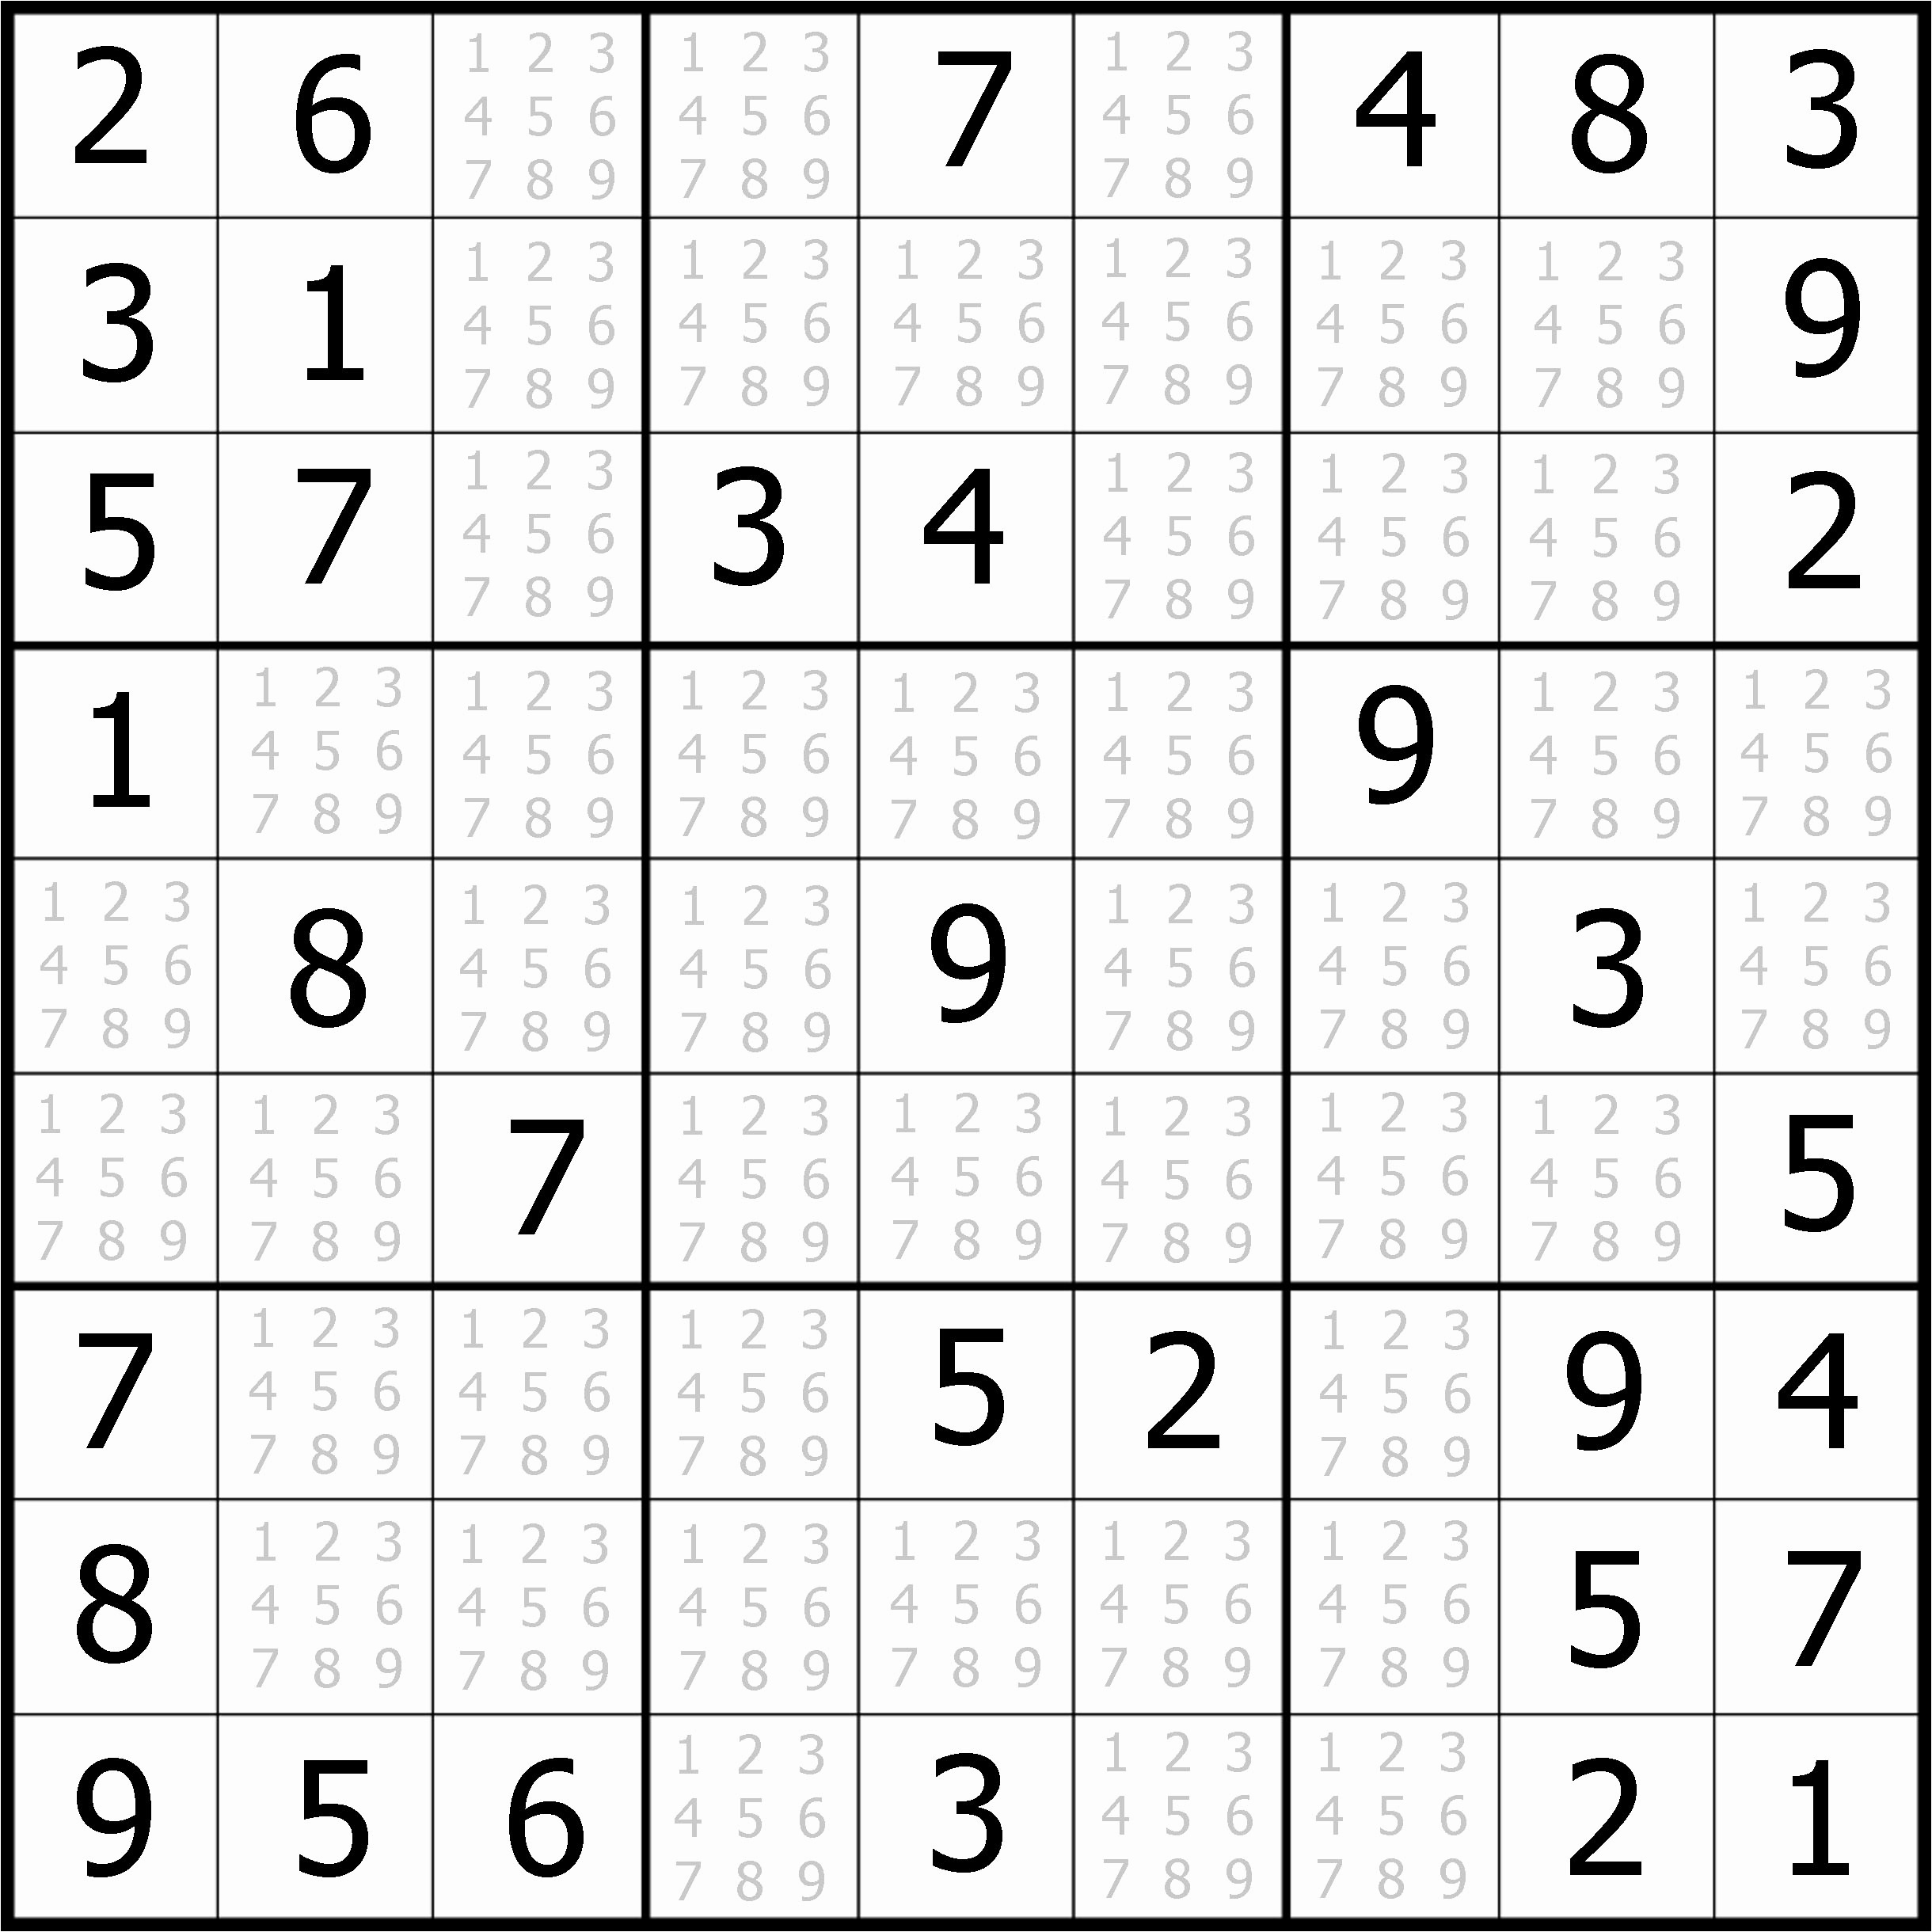 Easy Sudoku Puzzles To Print Free Download Featured Sudoku Puzzle To - Free Printable Sudoku